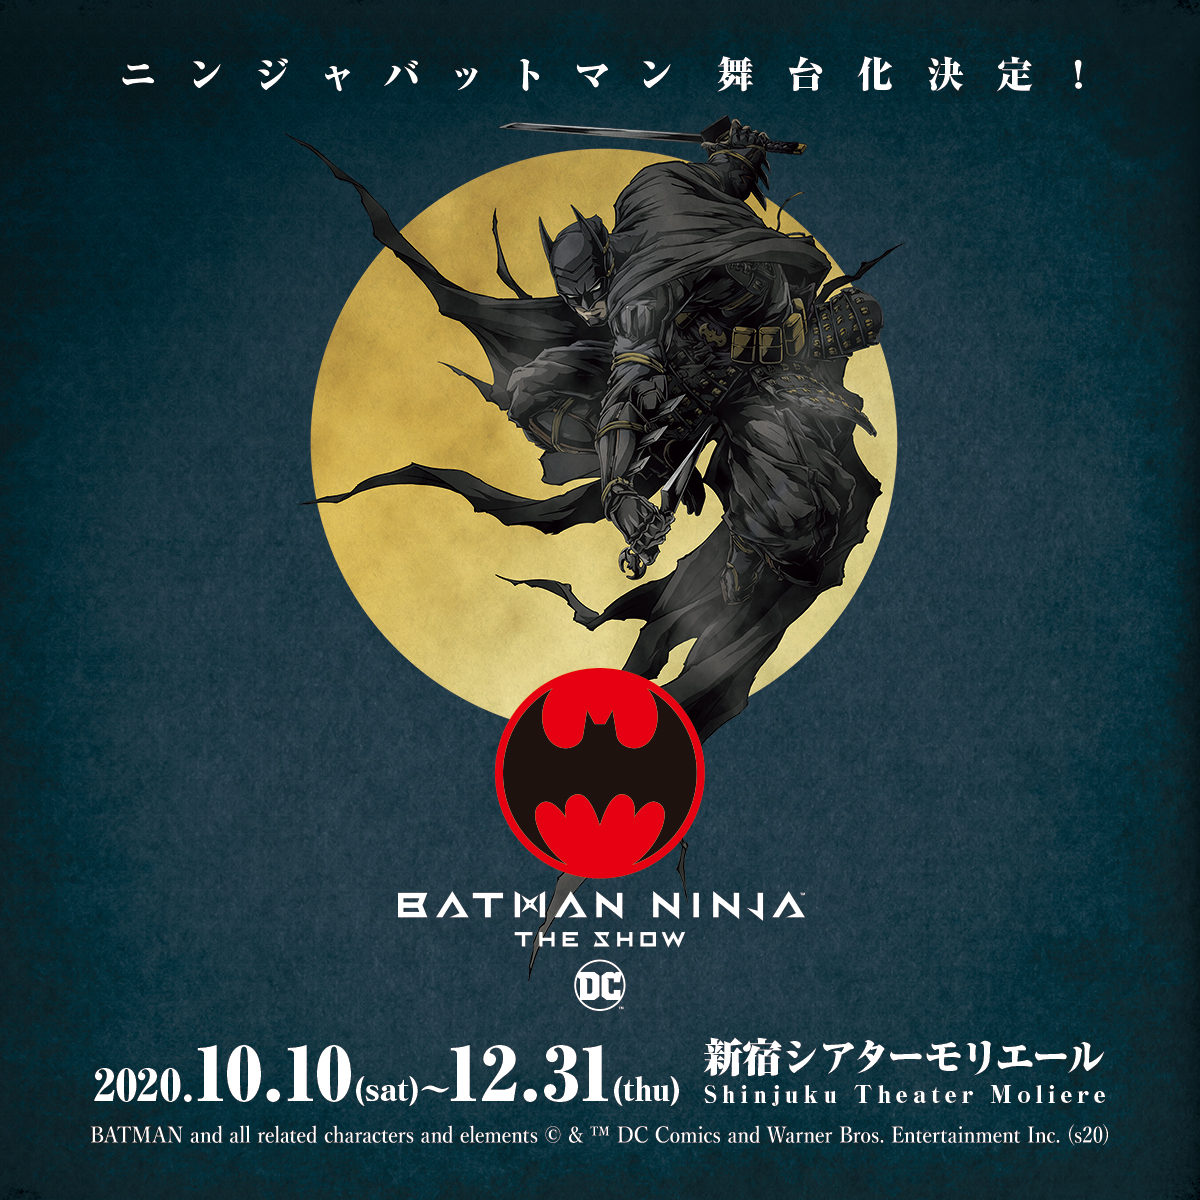 BATMAN NINJA―THE SHOWキーアート